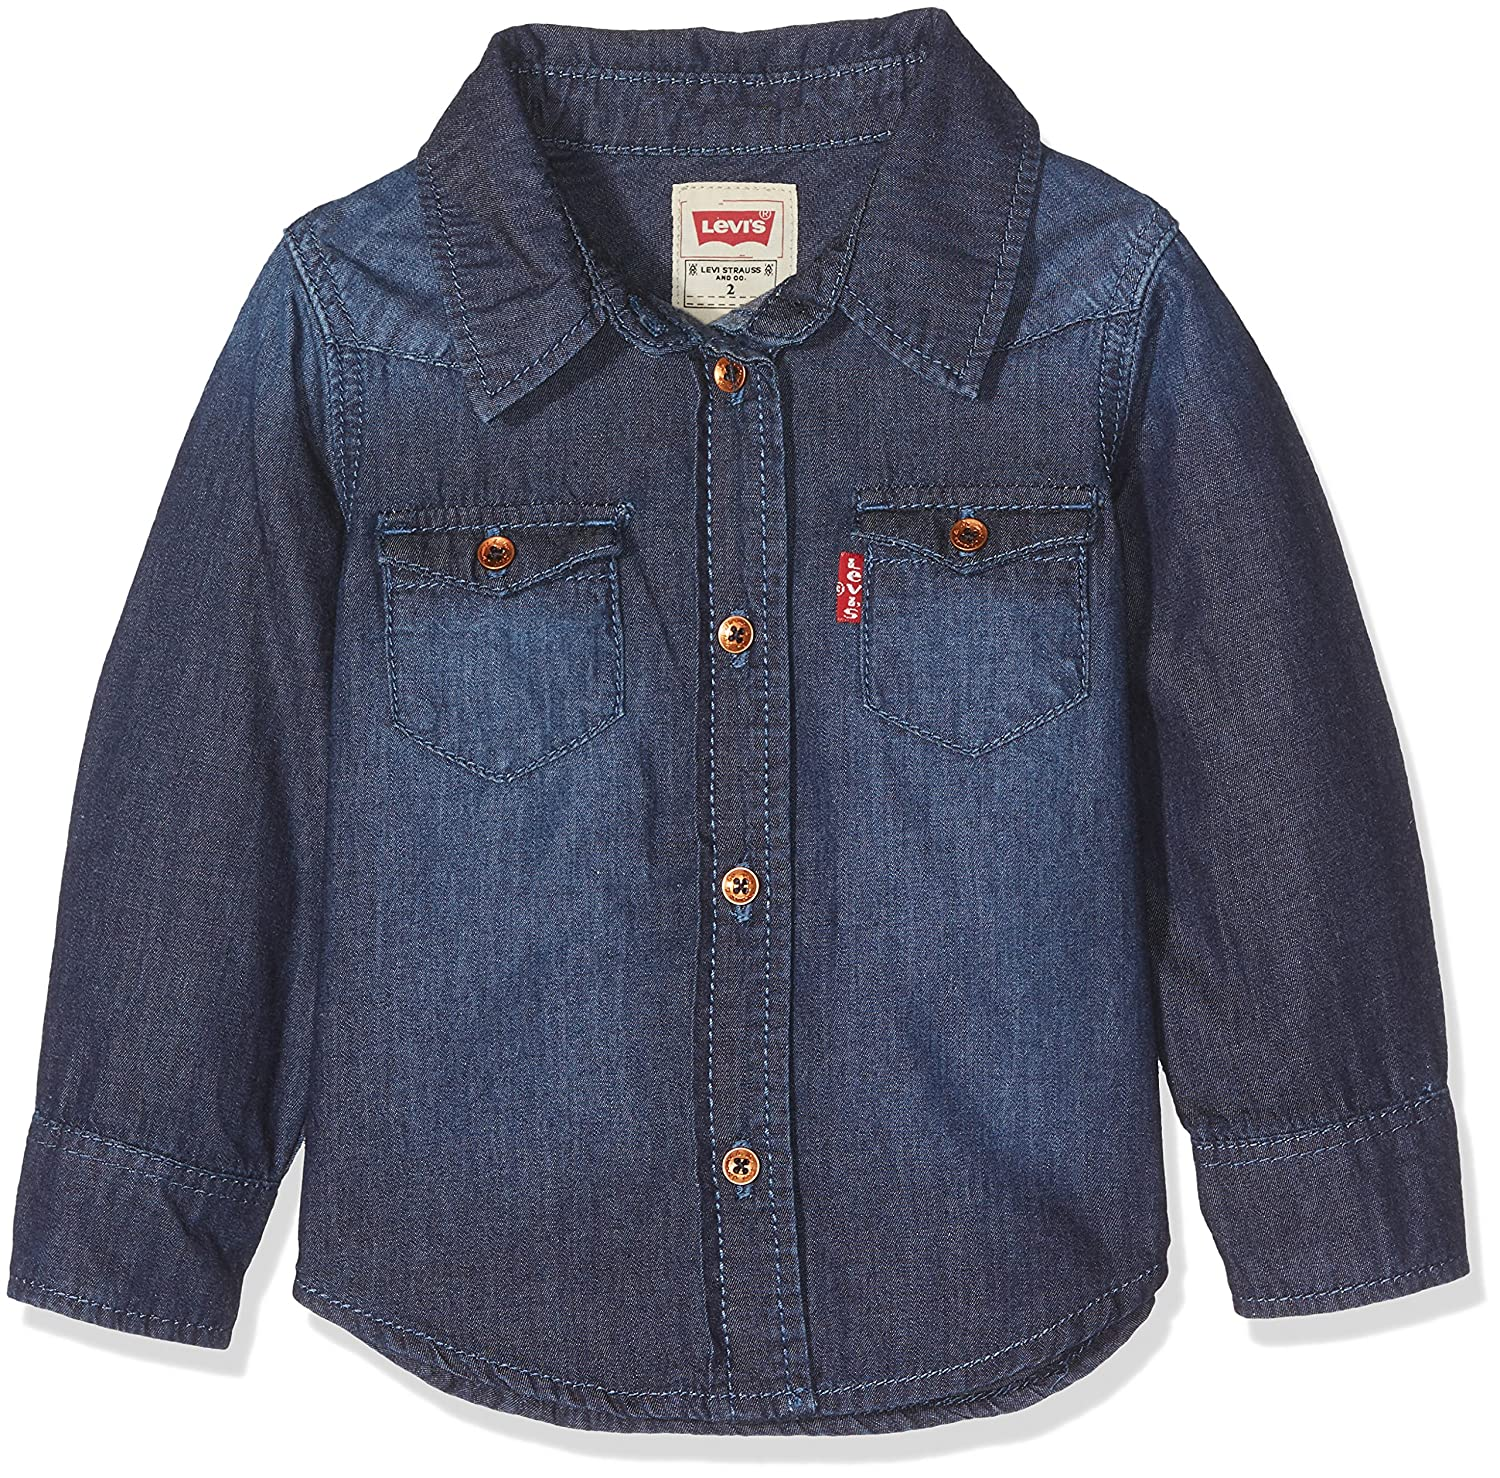 Levi's Kids Girl's Sports Shirt Levi's N91250J